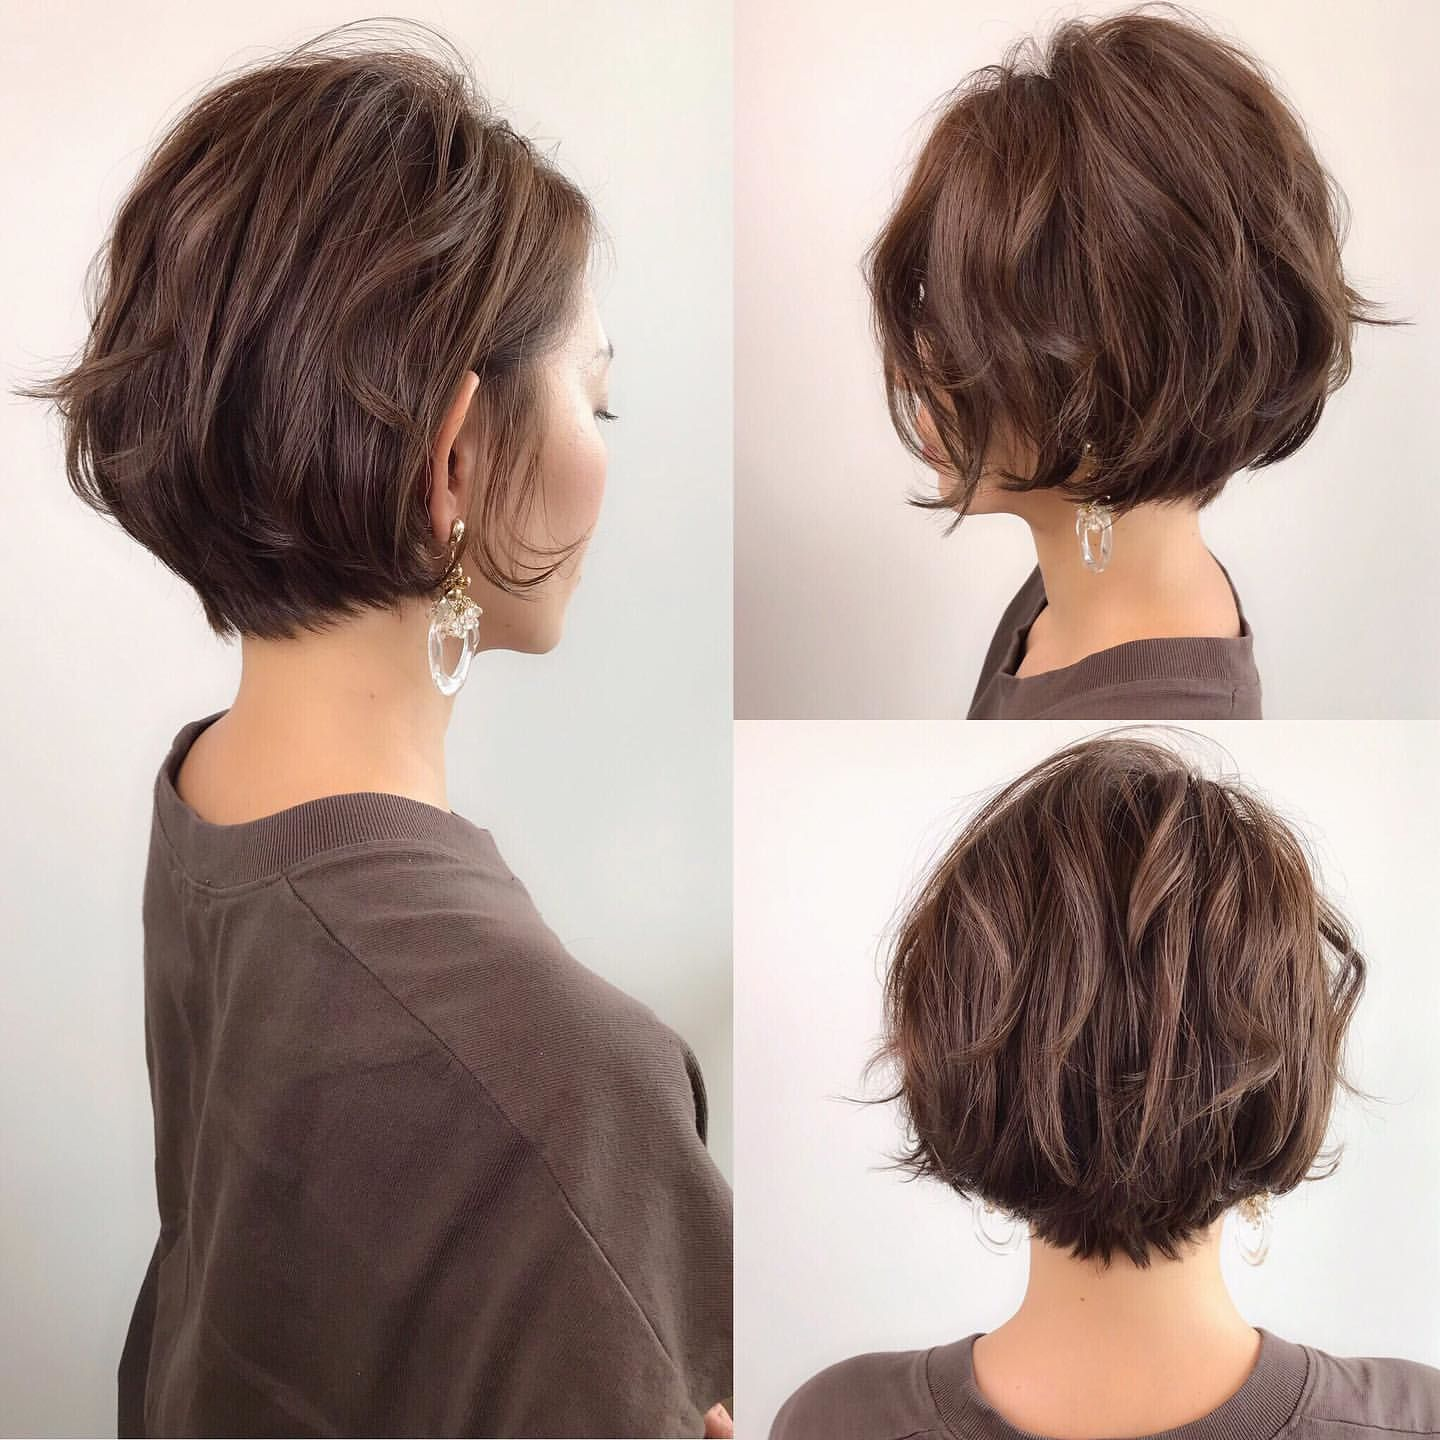 65 Best Messy Short Hairstyles Japanese Japanese Short Hair Messy Short Hair Short Hair Styles